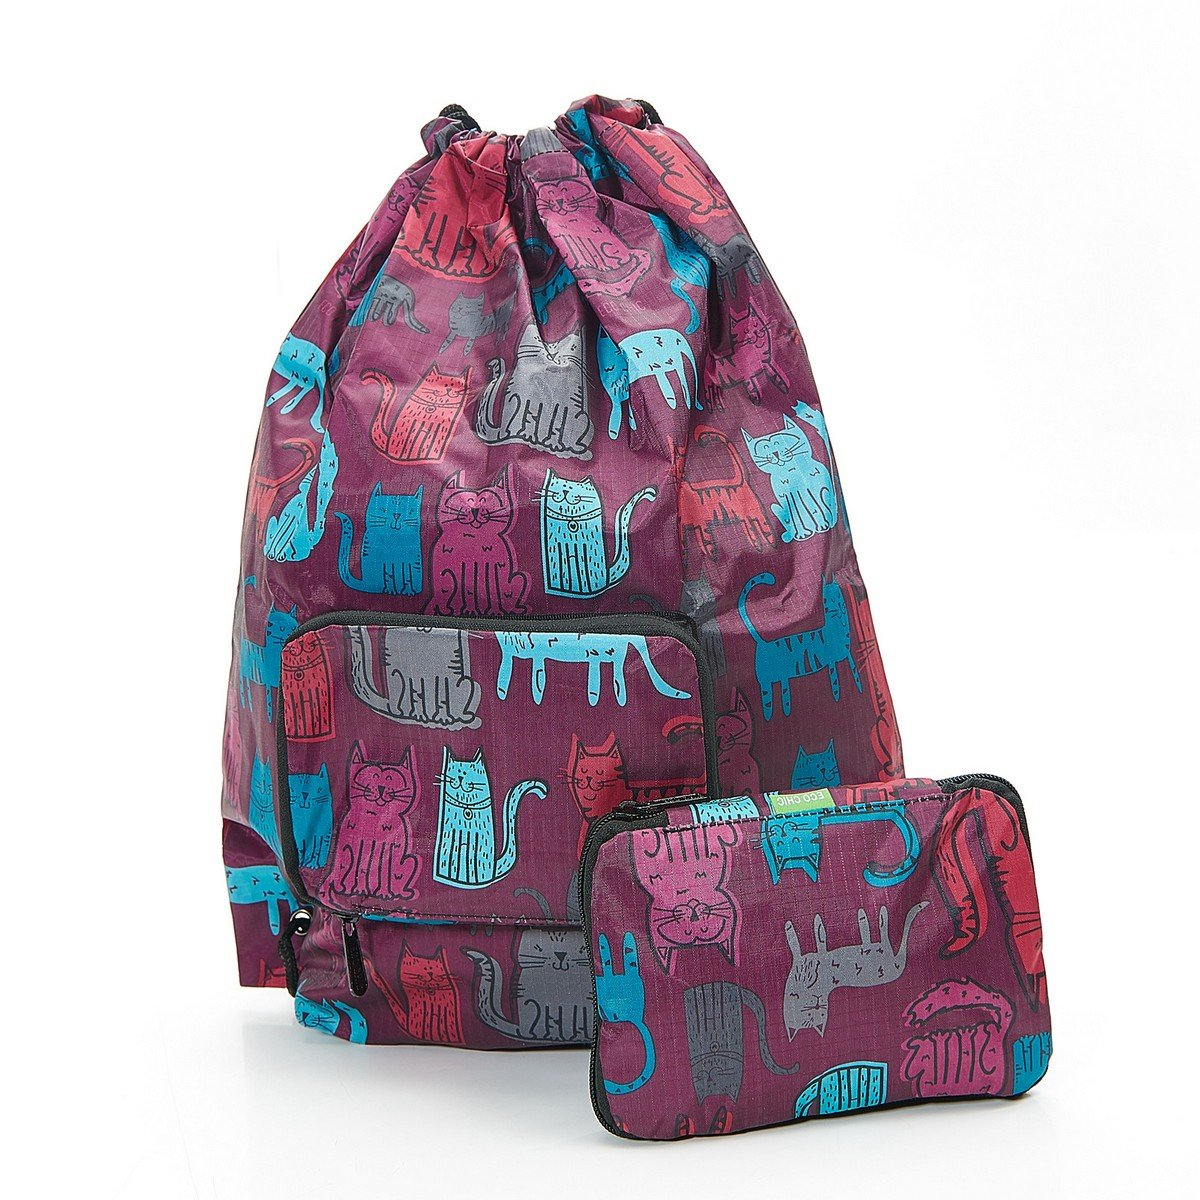 23e7df422a Eco Chic Children s Foldable Drawstring Bag - Funky Cats (Burgundy)   Amazon.co.uk  Sports   Outdoors